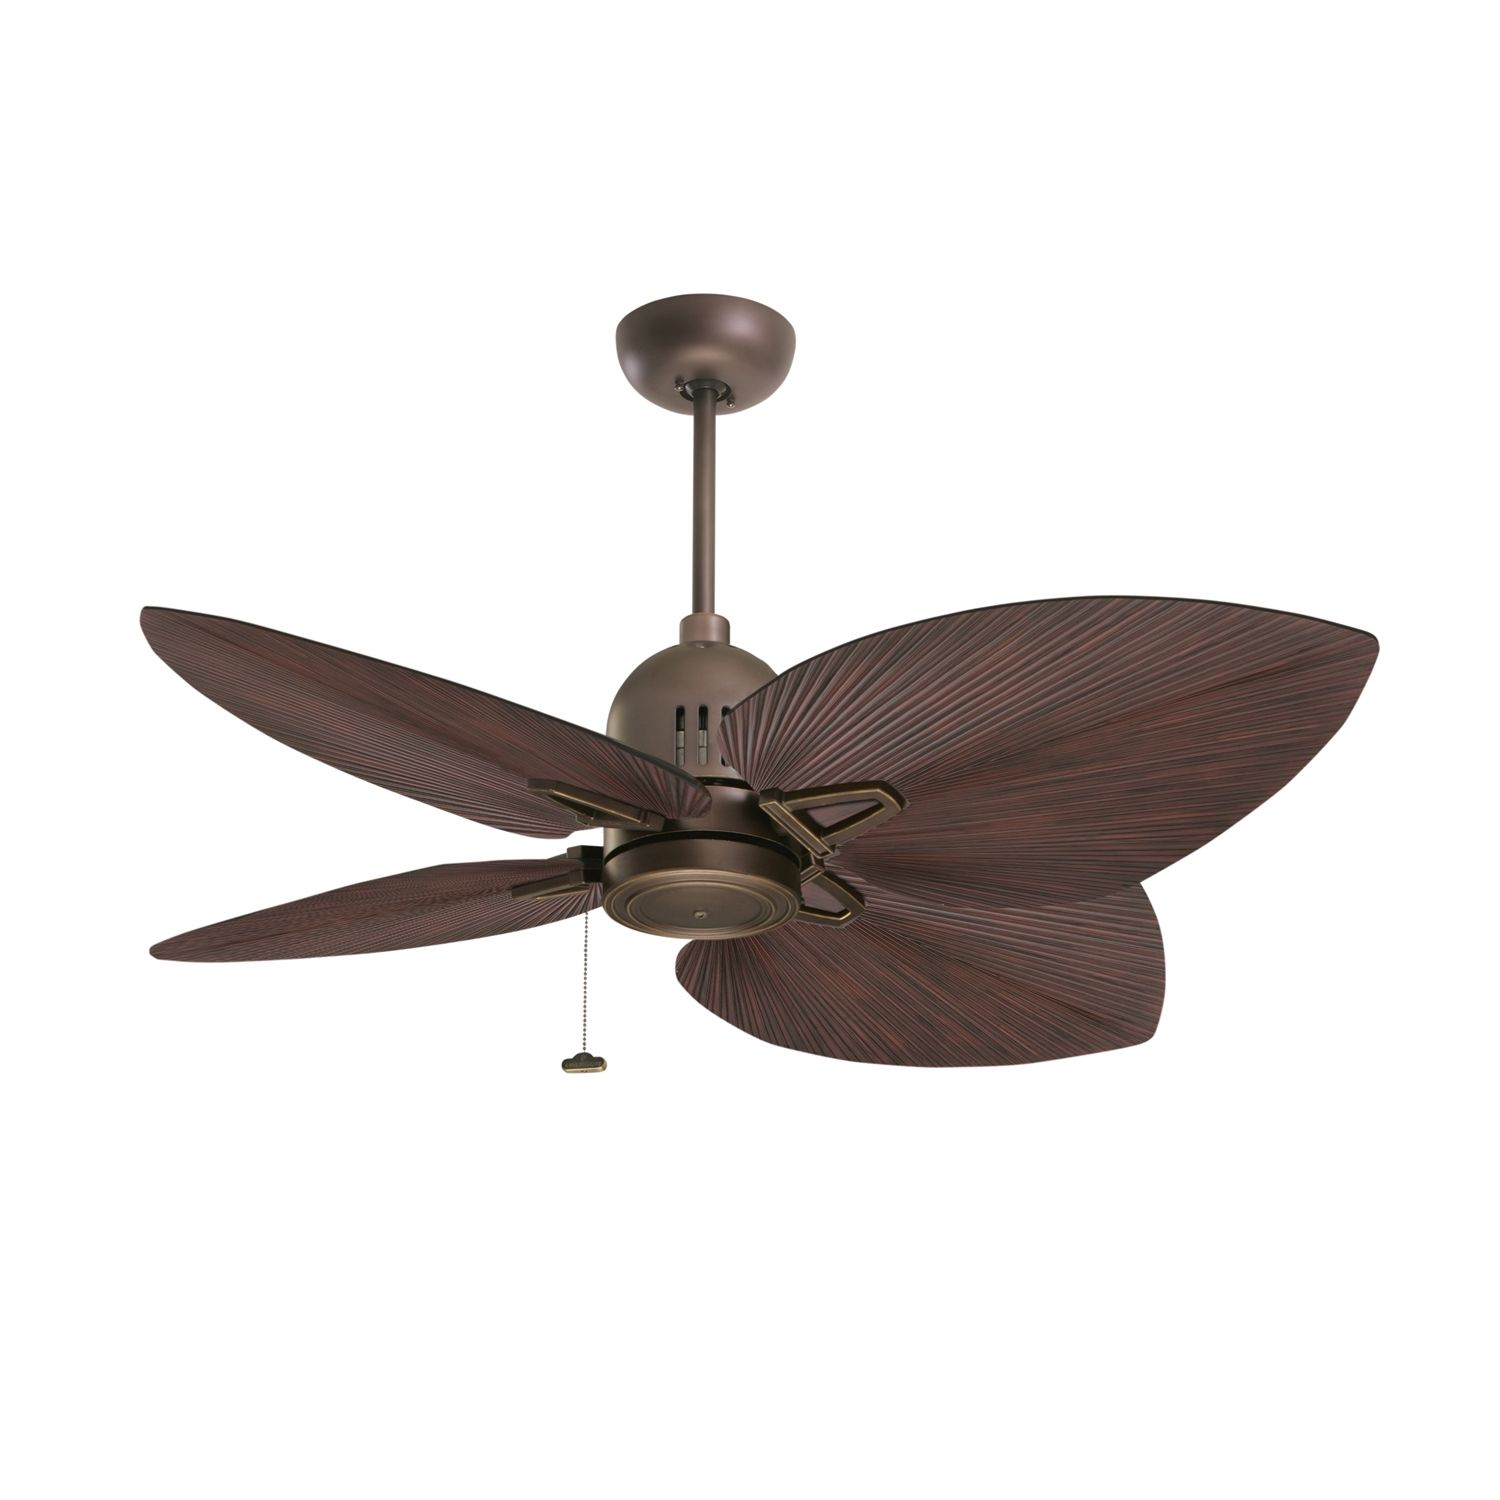 Emerson electric cf3600orh st croix camden indoor ceiling fan at emerson electric cf3600orh st croix camden indoor ceiling fan at atg stores aloadofball Image collections